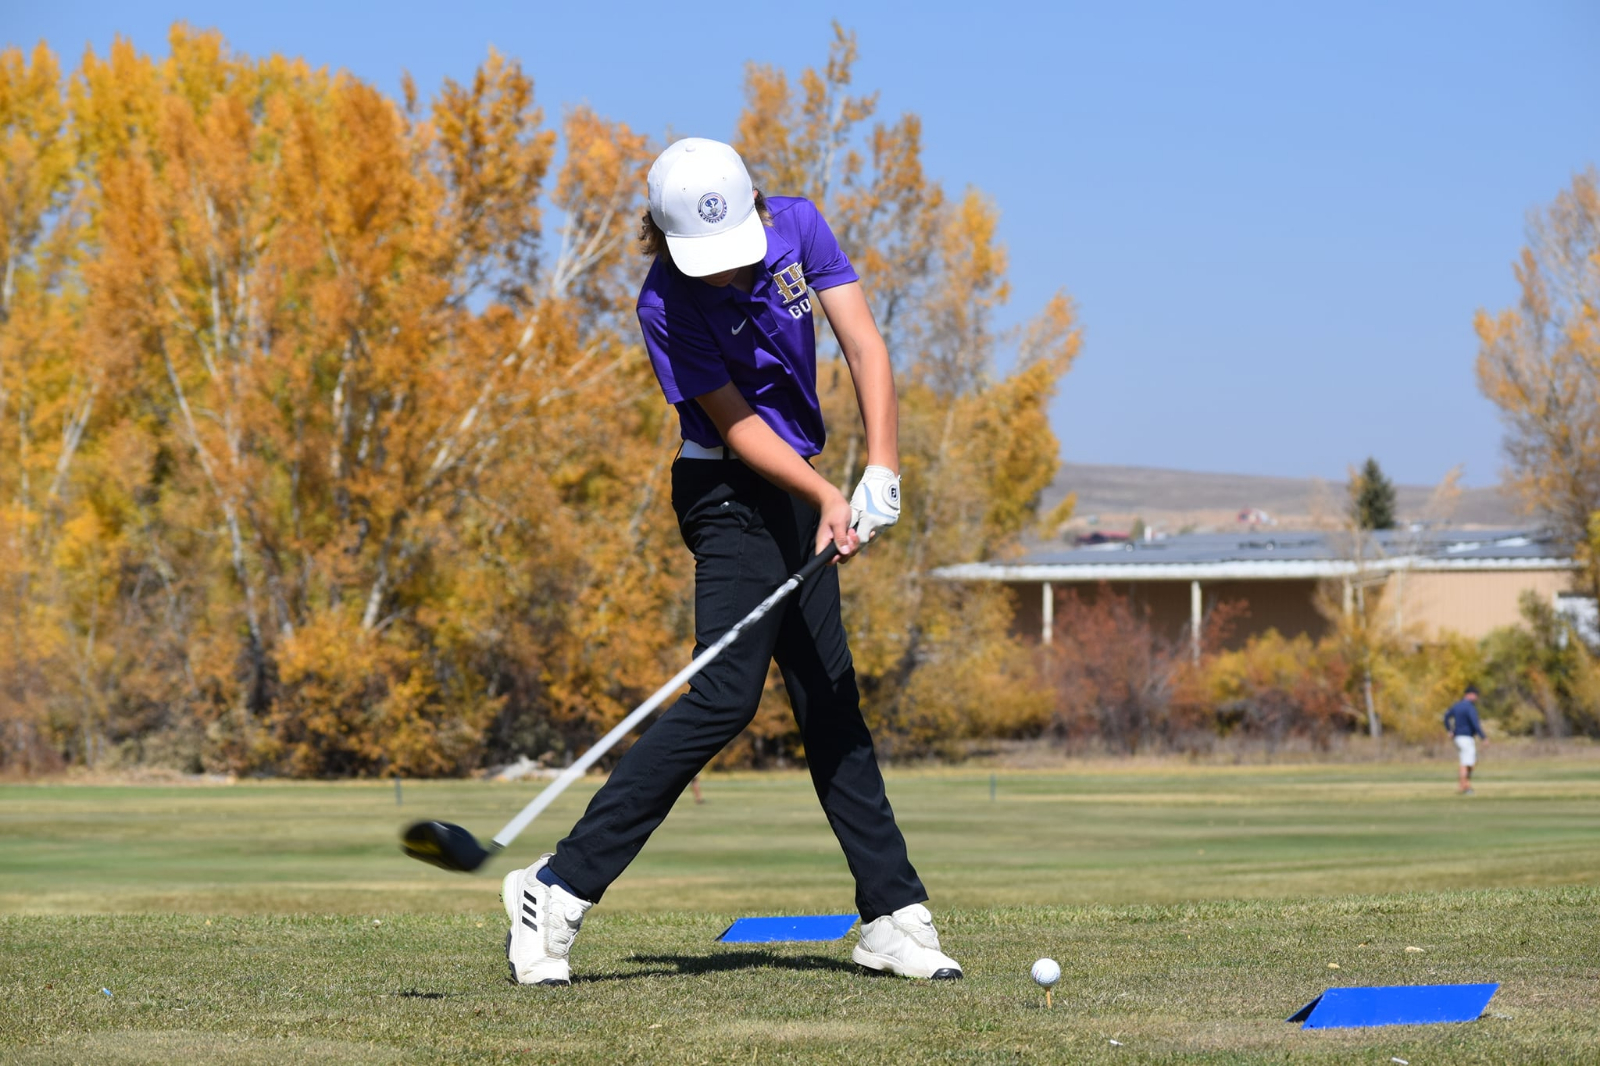 Boys golf: 3A State Tournament in Gunnison (10/5-6) — Photos by Will Wilson